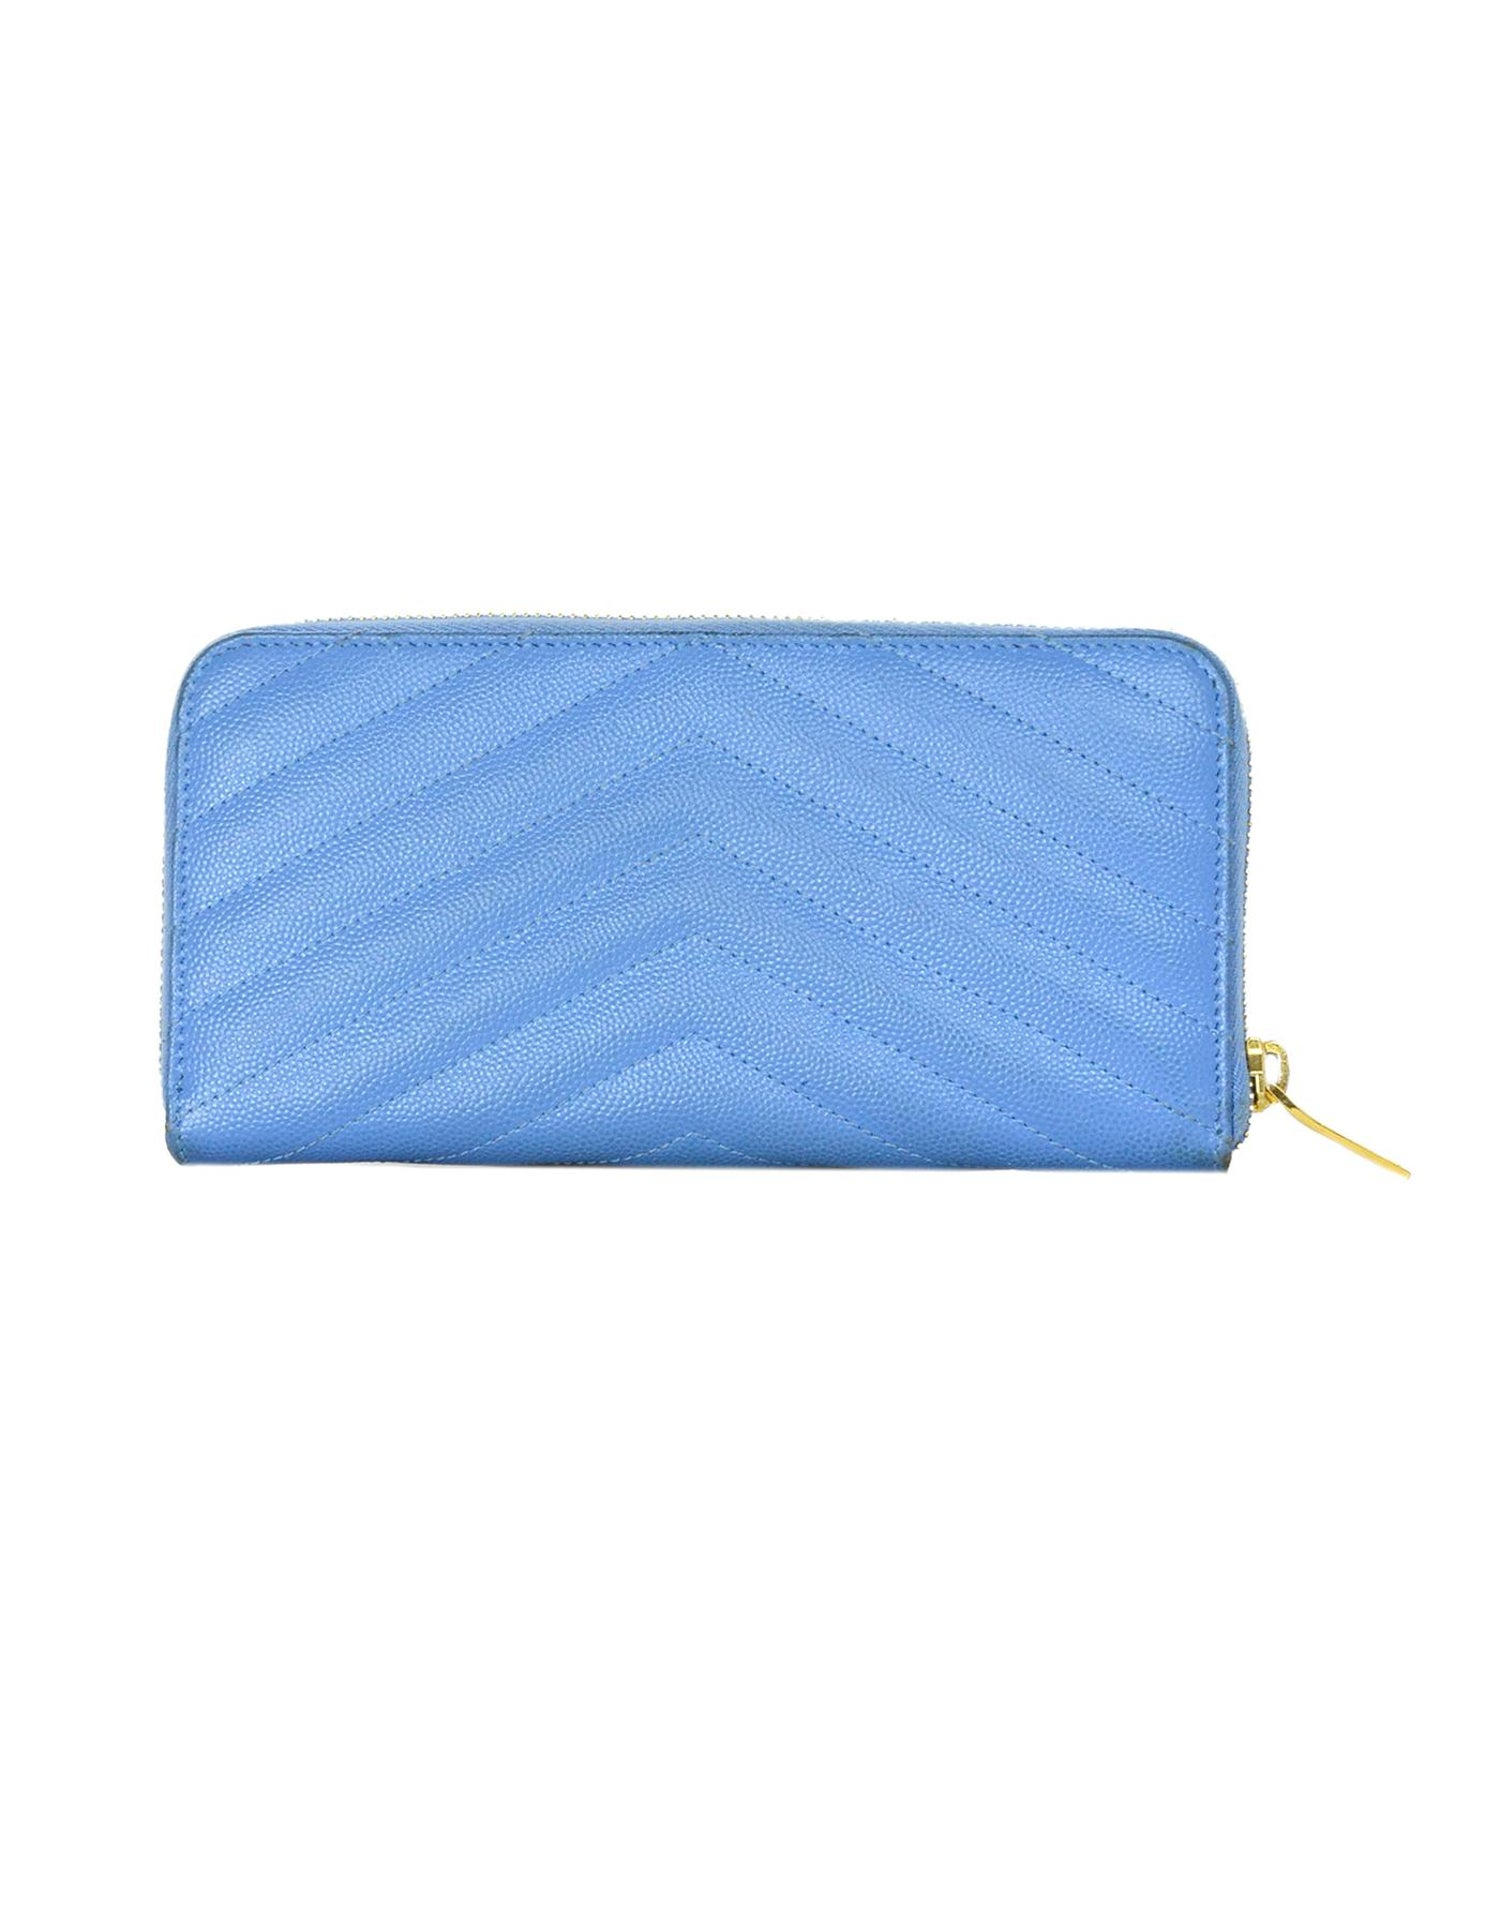 97e7b680 Saint Laurent Baby Blue Grain De Poudre Leather Chevron YSL Monogram Zip  Wallet